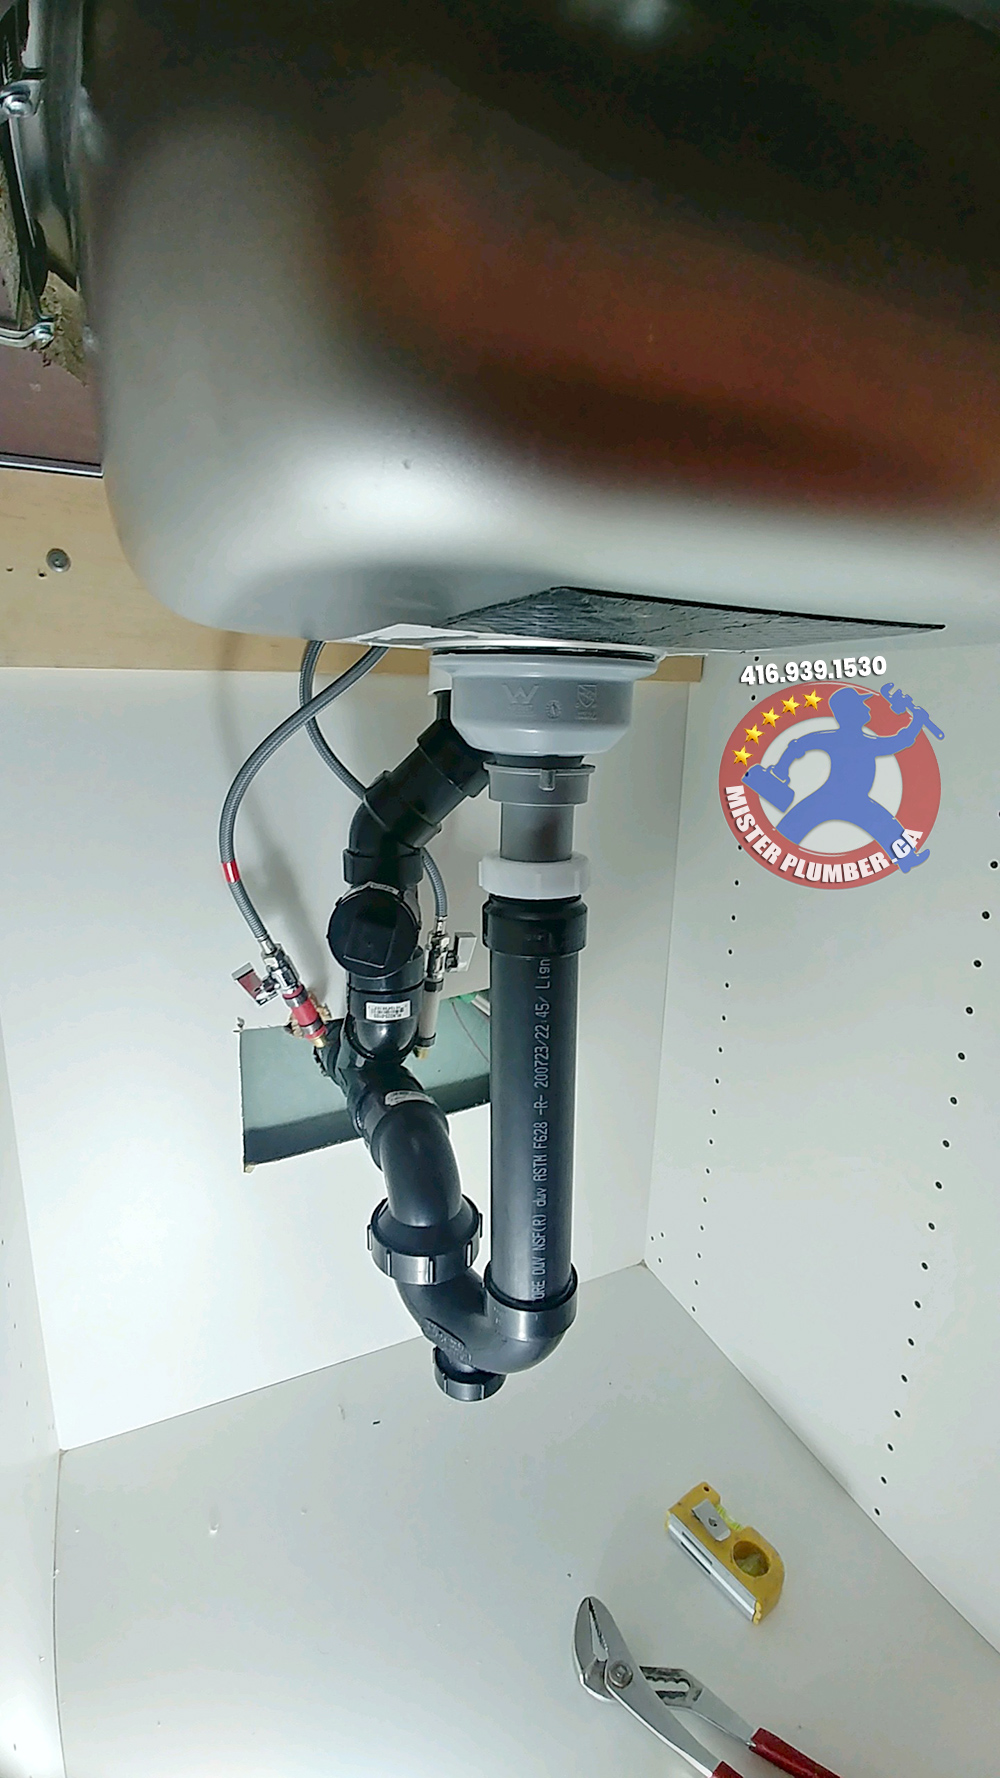 Under kitchen sink plumbing connection done by plumber in Etobicoke